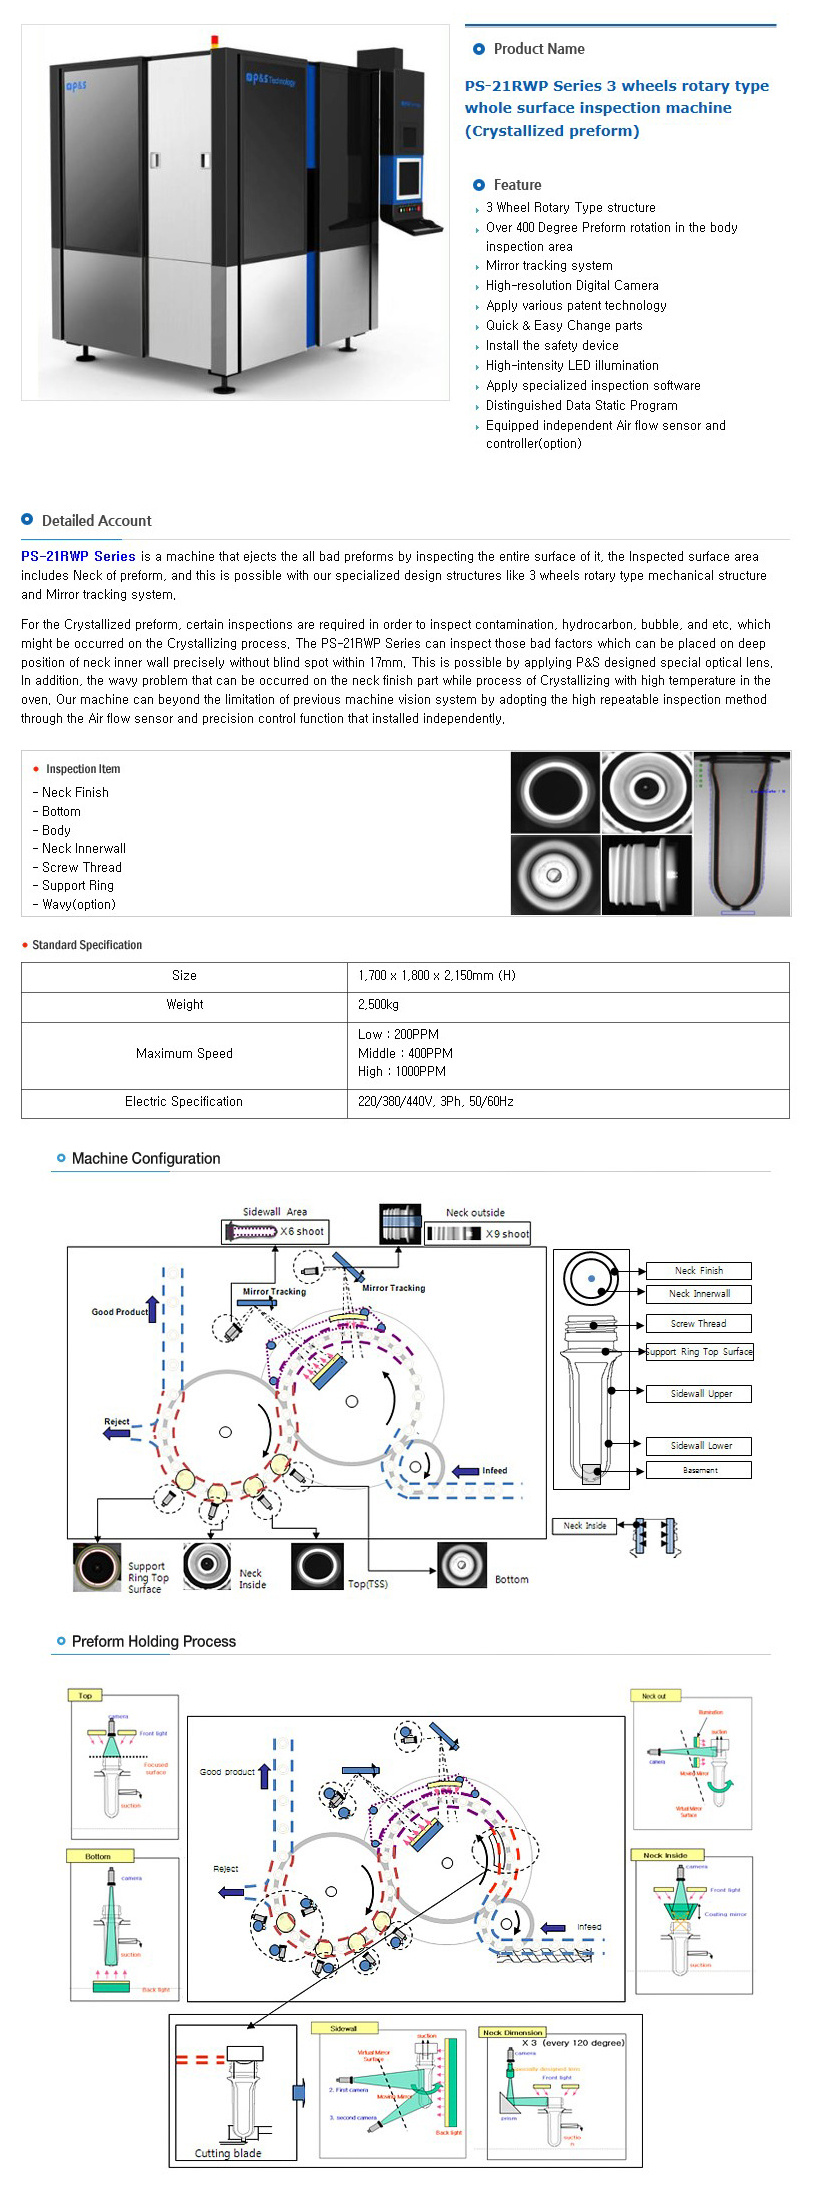 P&S TECHNOLOGY 3 wheels rotary type whole surface inspection machine PS-21RWP Series